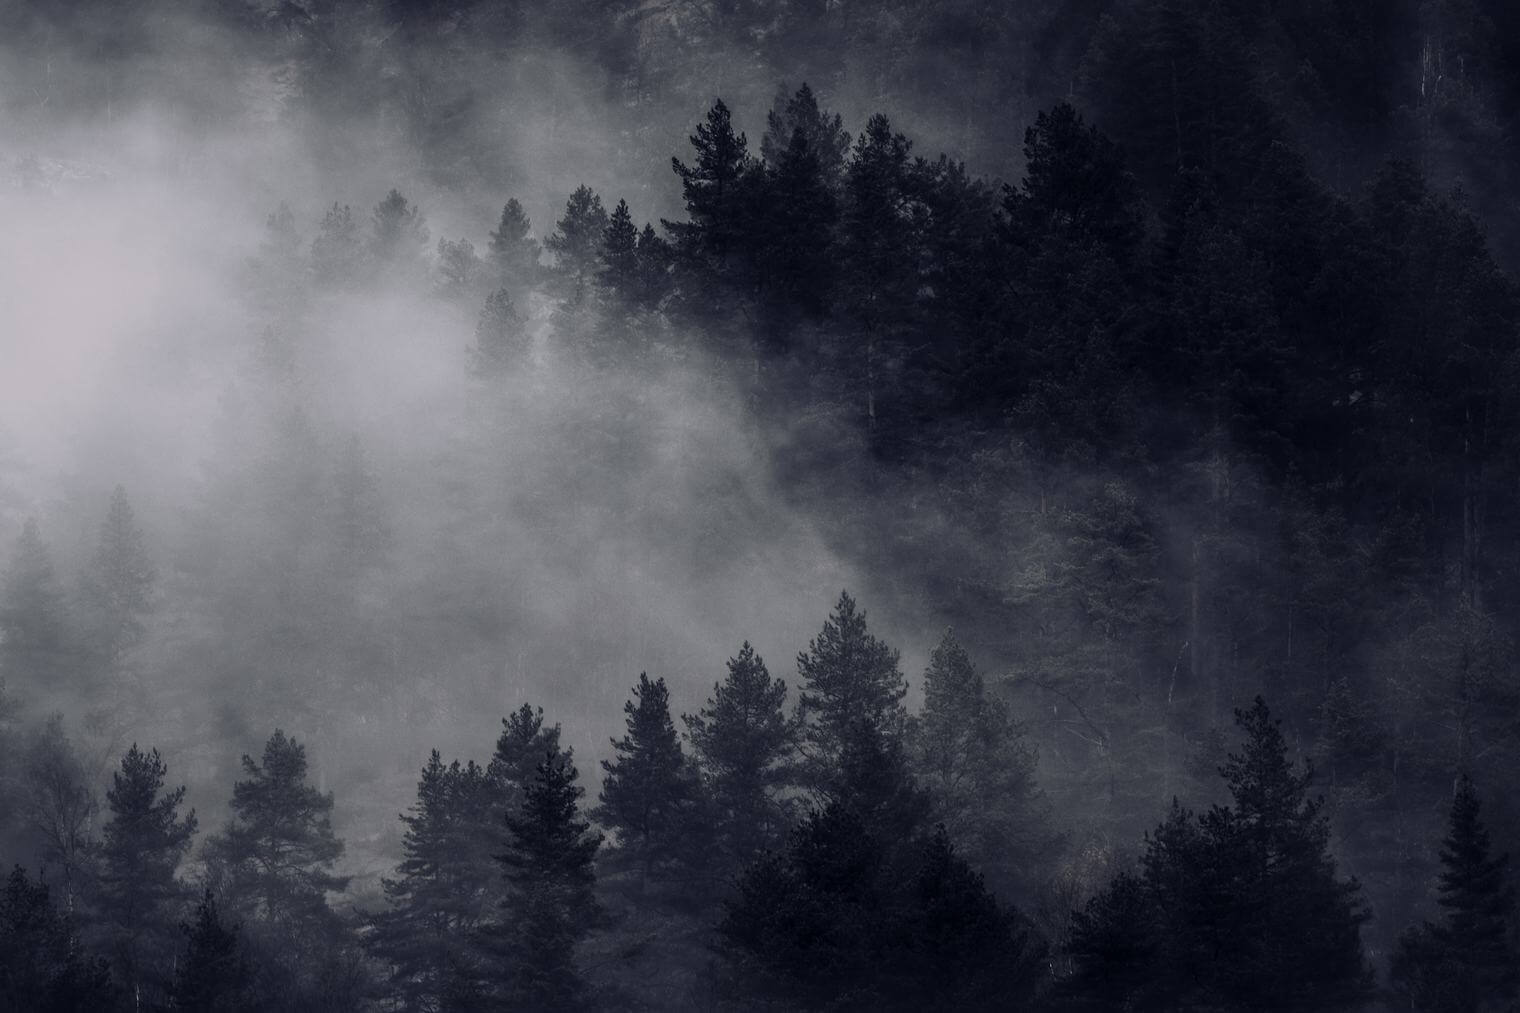 Foggy forest with clouds